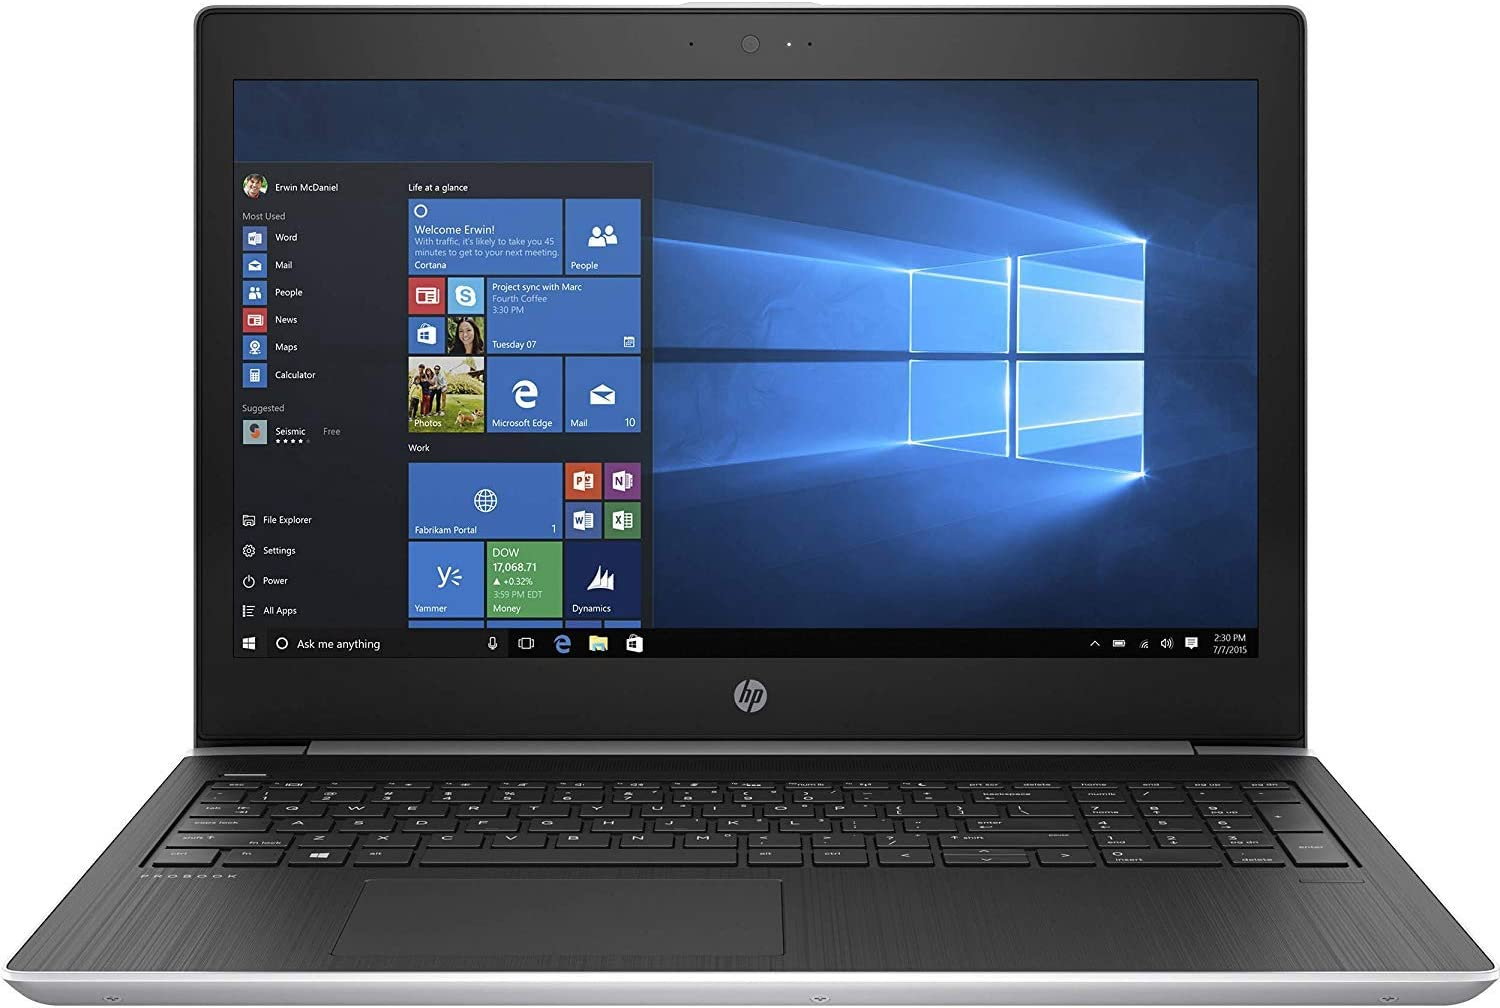 "HP 2019 Newest hp probook 450 g5 15.6"" Anti-Glare hd Business Laptop (Intel Quad core i5-8250u, 8gb ddr4 ram, 500gb HDD,uhd 620) Type-c, WiFi ac, Webcam, hdmi, vga, Windows 10 Home, 2.6 Pound"